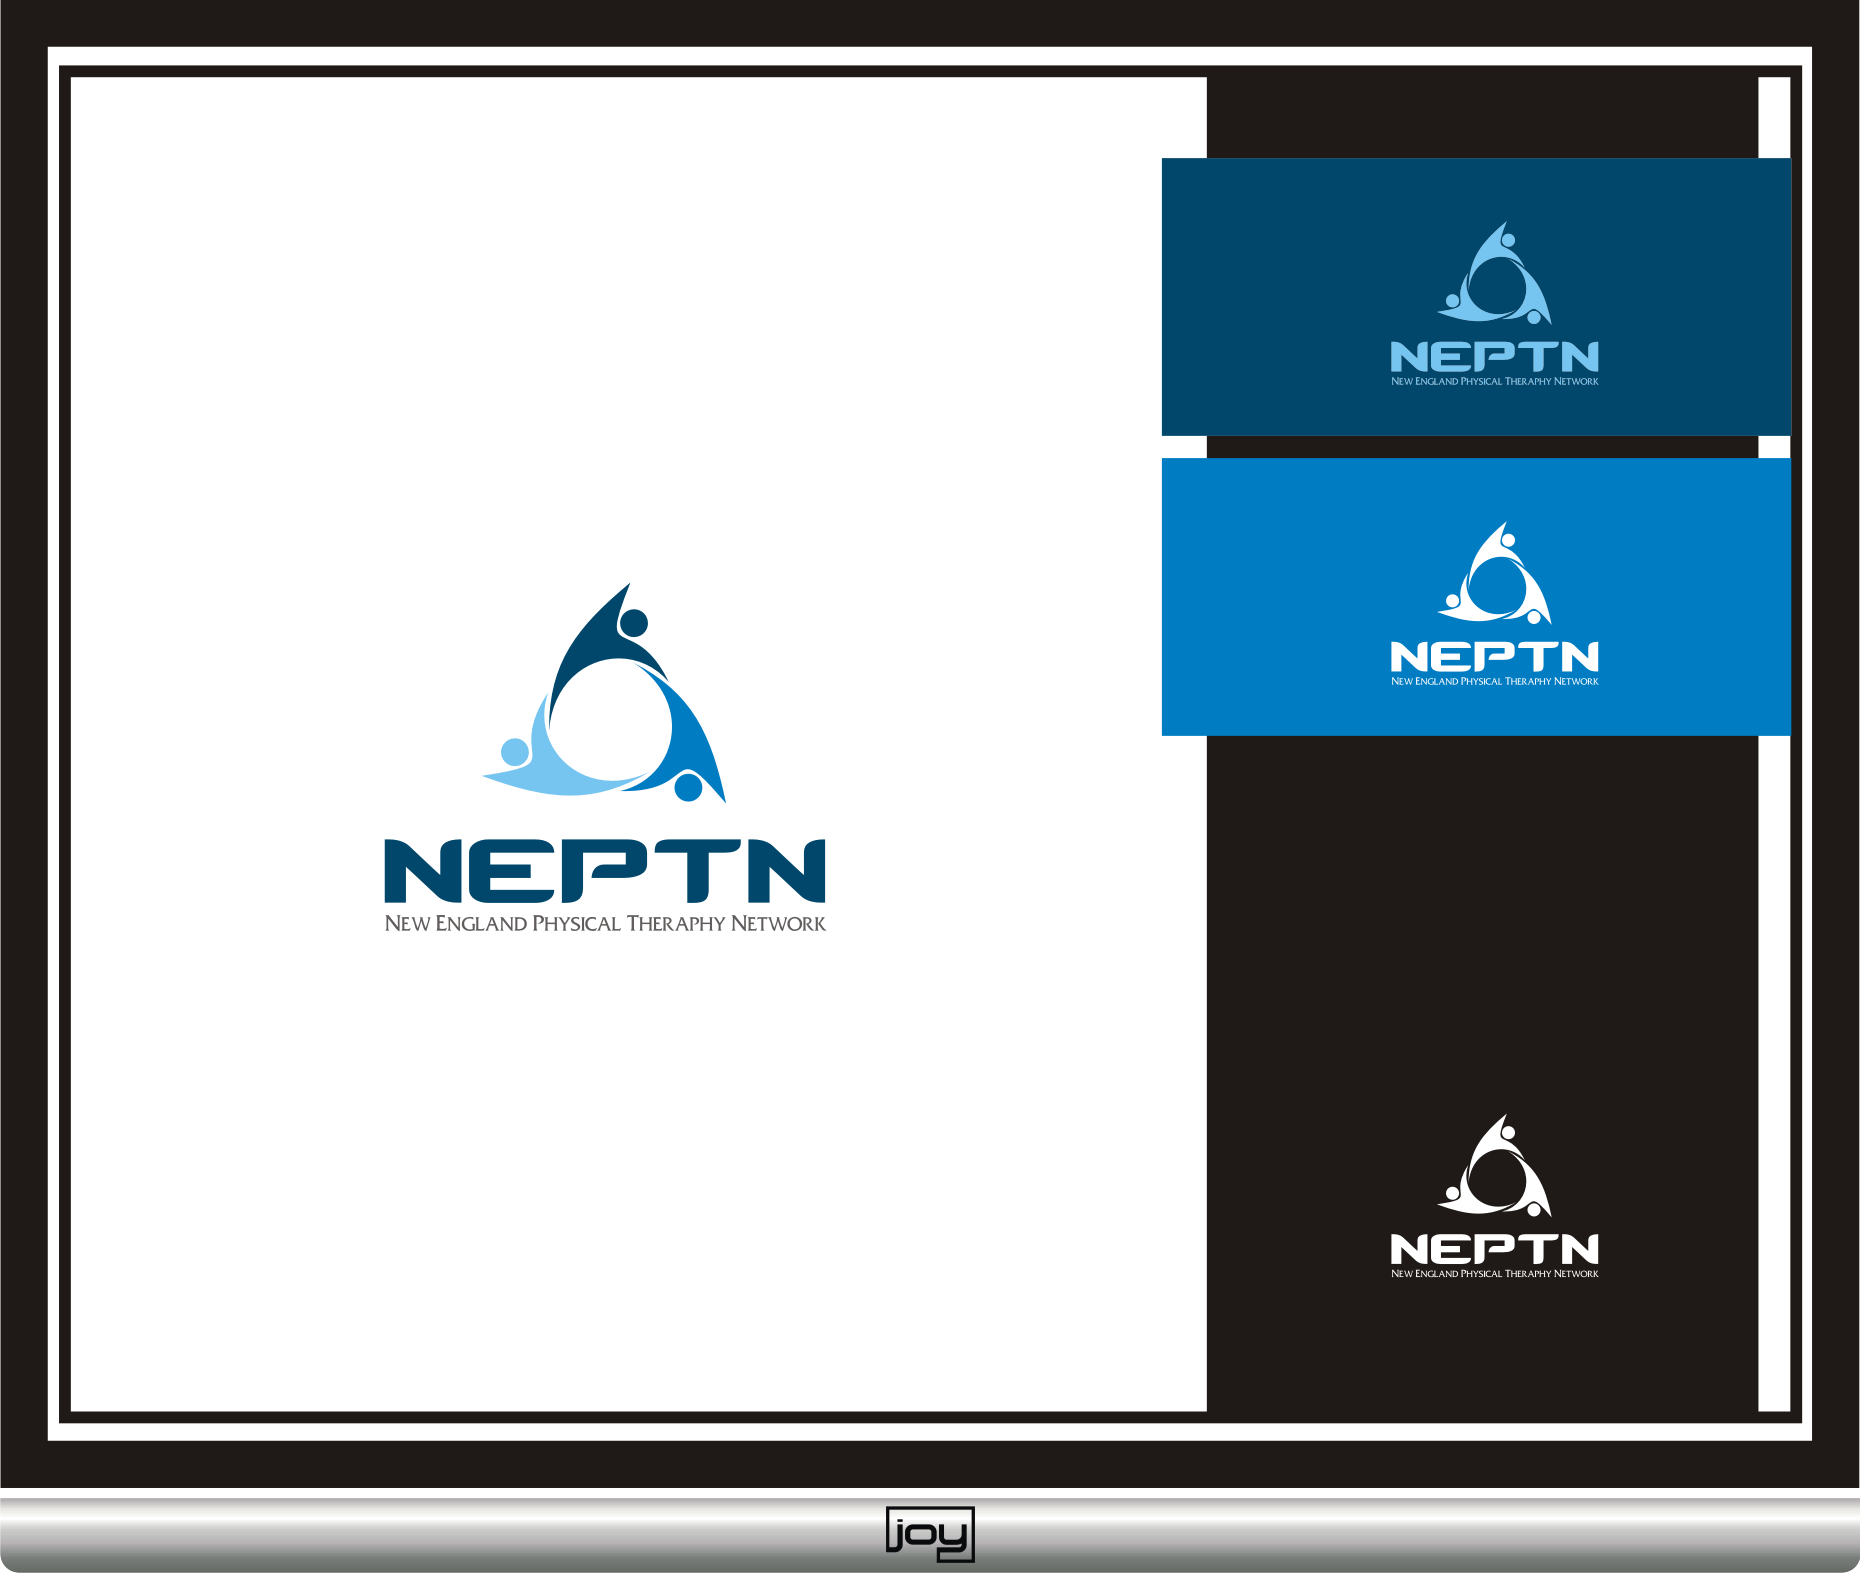 Logo Design by joysetiawan - Entry No. 48 in the Logo Design Contest Fun Logo Design for NEPTN - New England Physical Therapy Network.